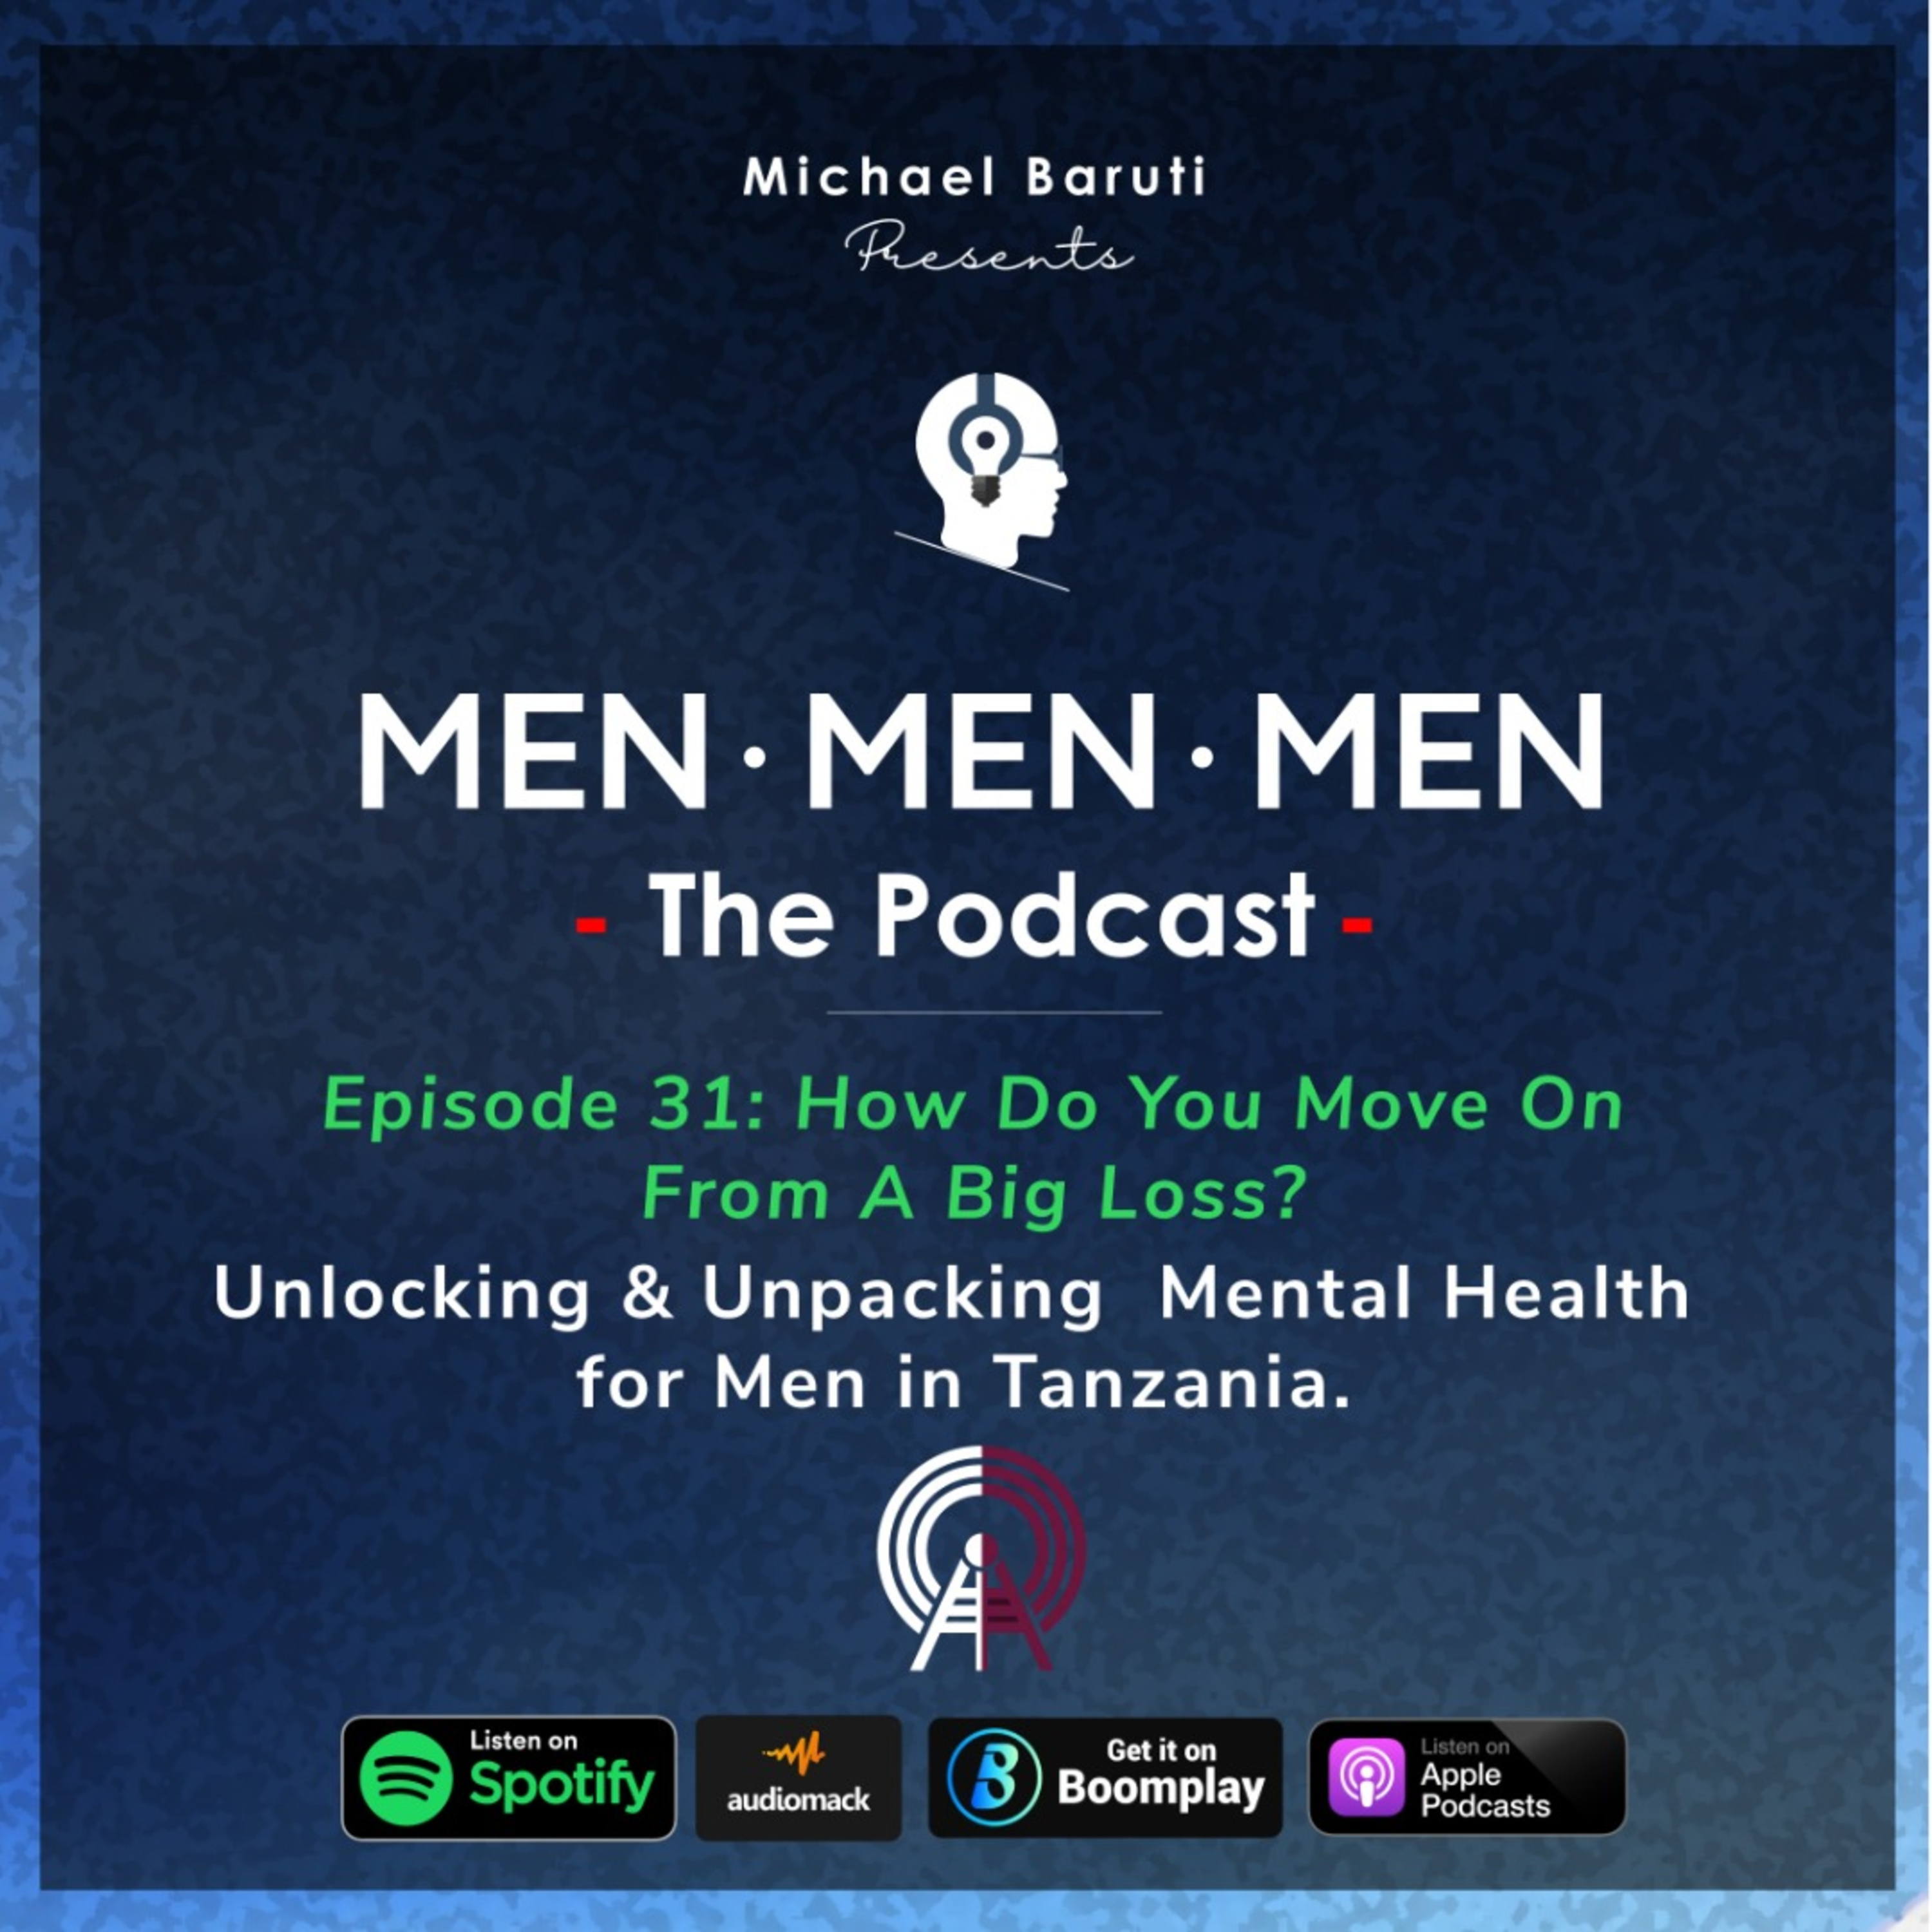 Men The Podcast - Ep 31 - How Do You Move On From A Big Loss?